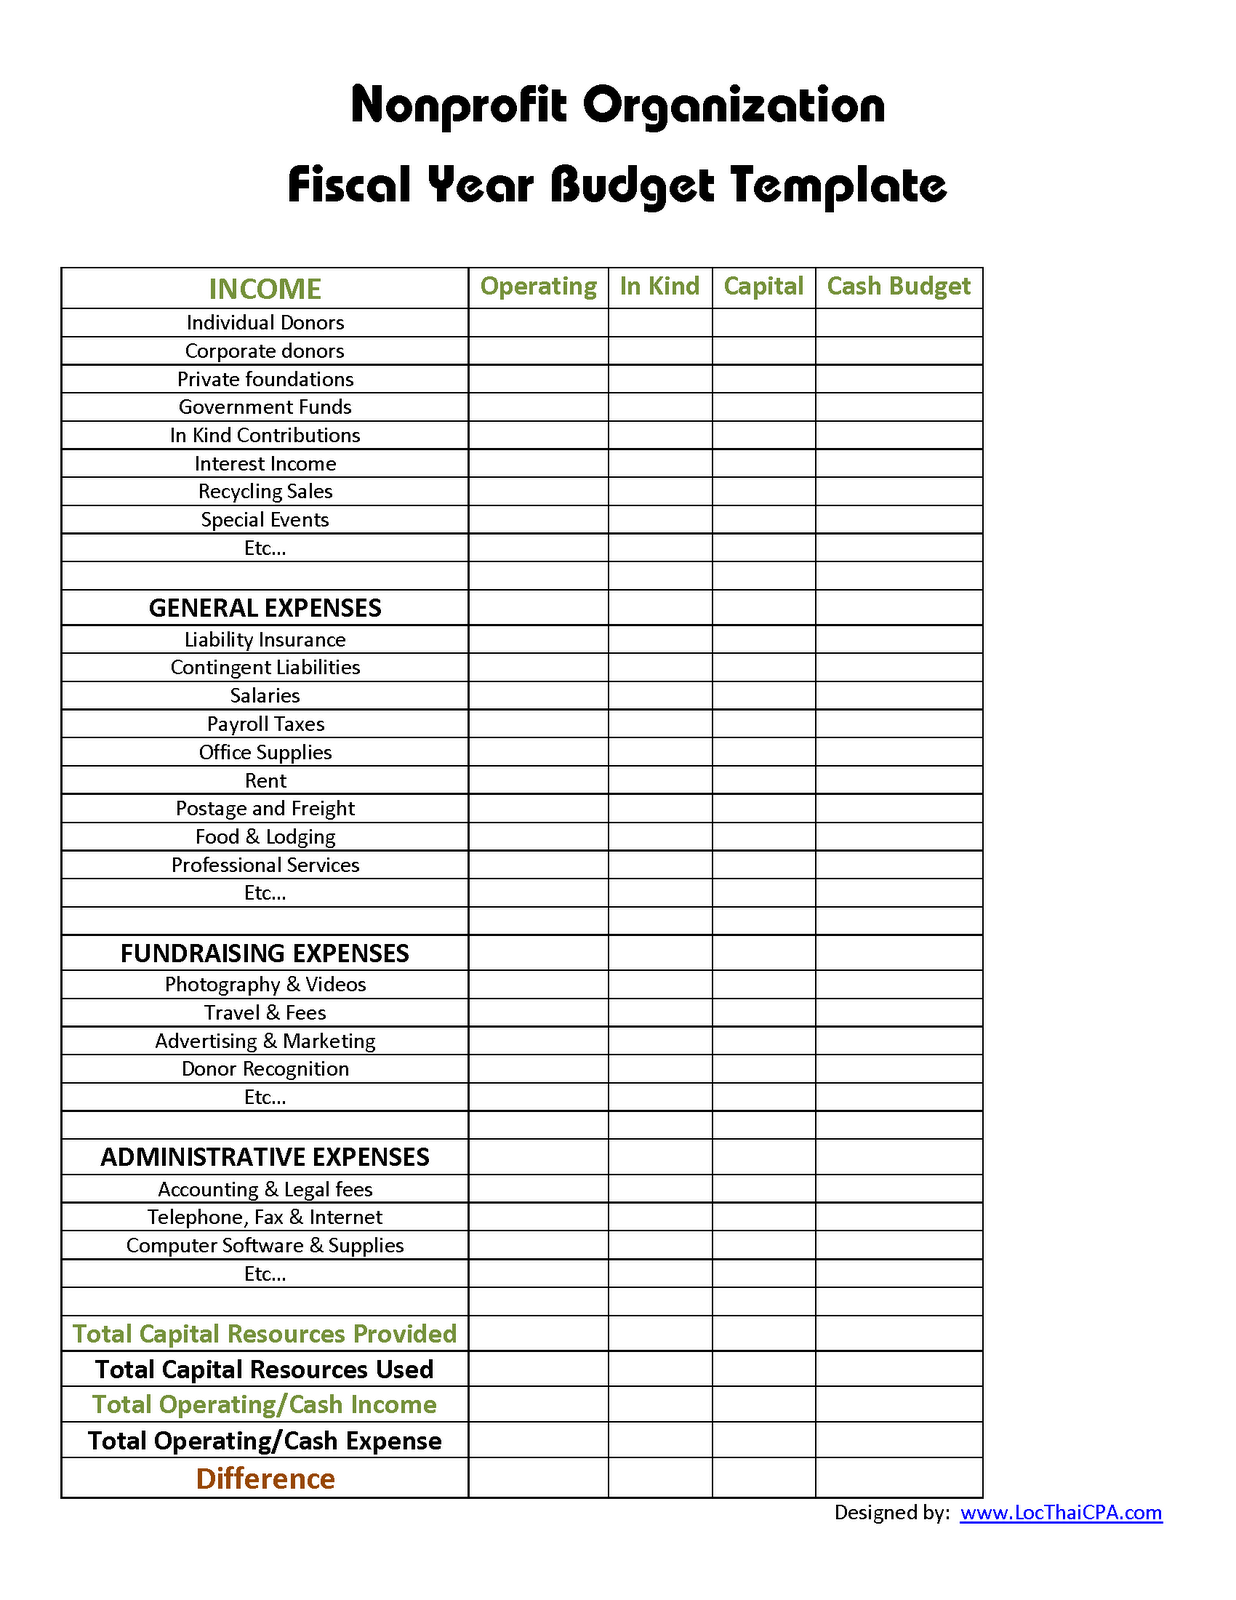 Non Profit Budget Template With Images